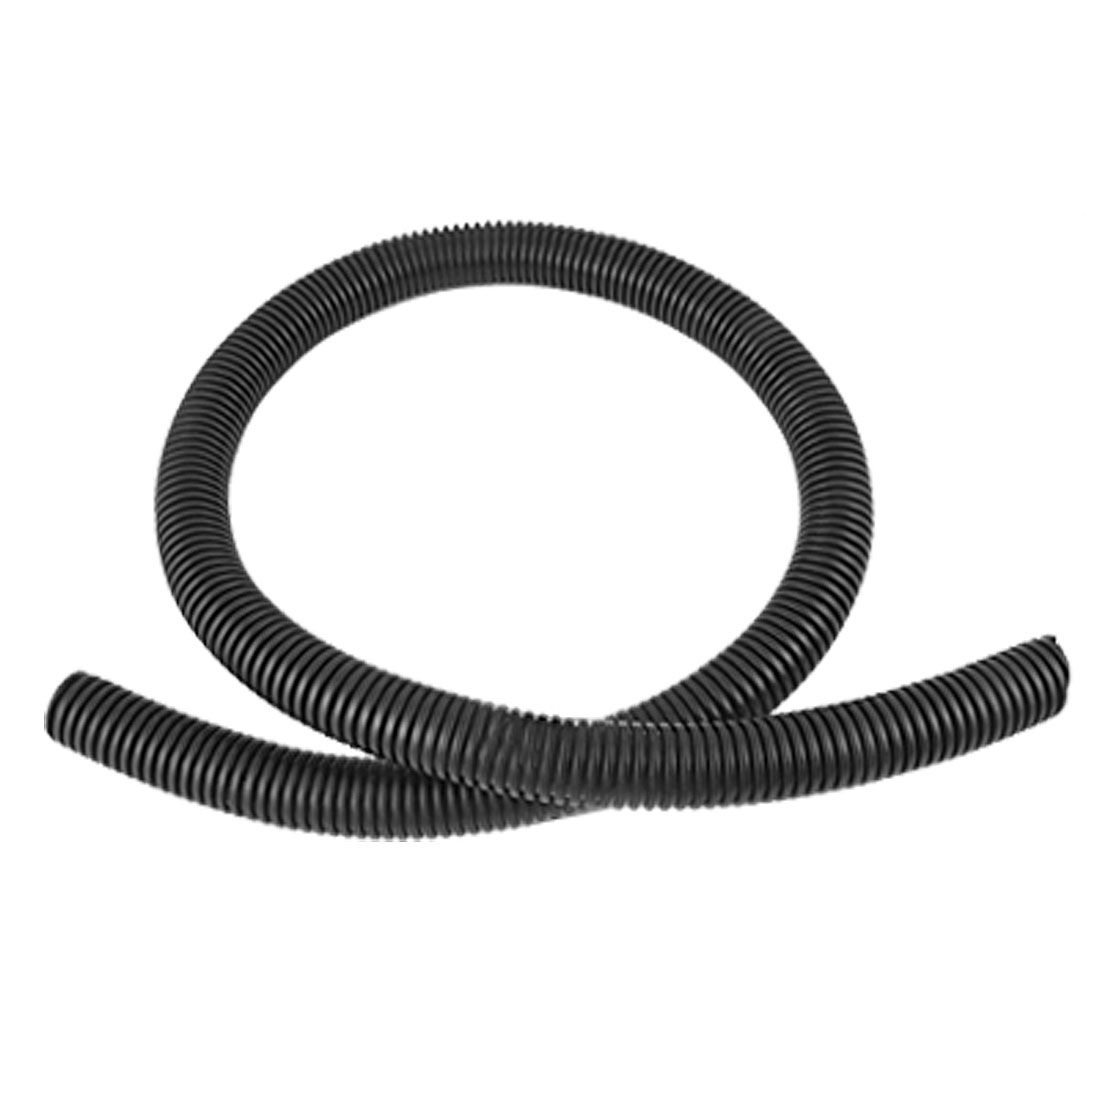 1M 20mm Inner Diameter Plastic Corrugated Tube Electric Conduit Pipe Black